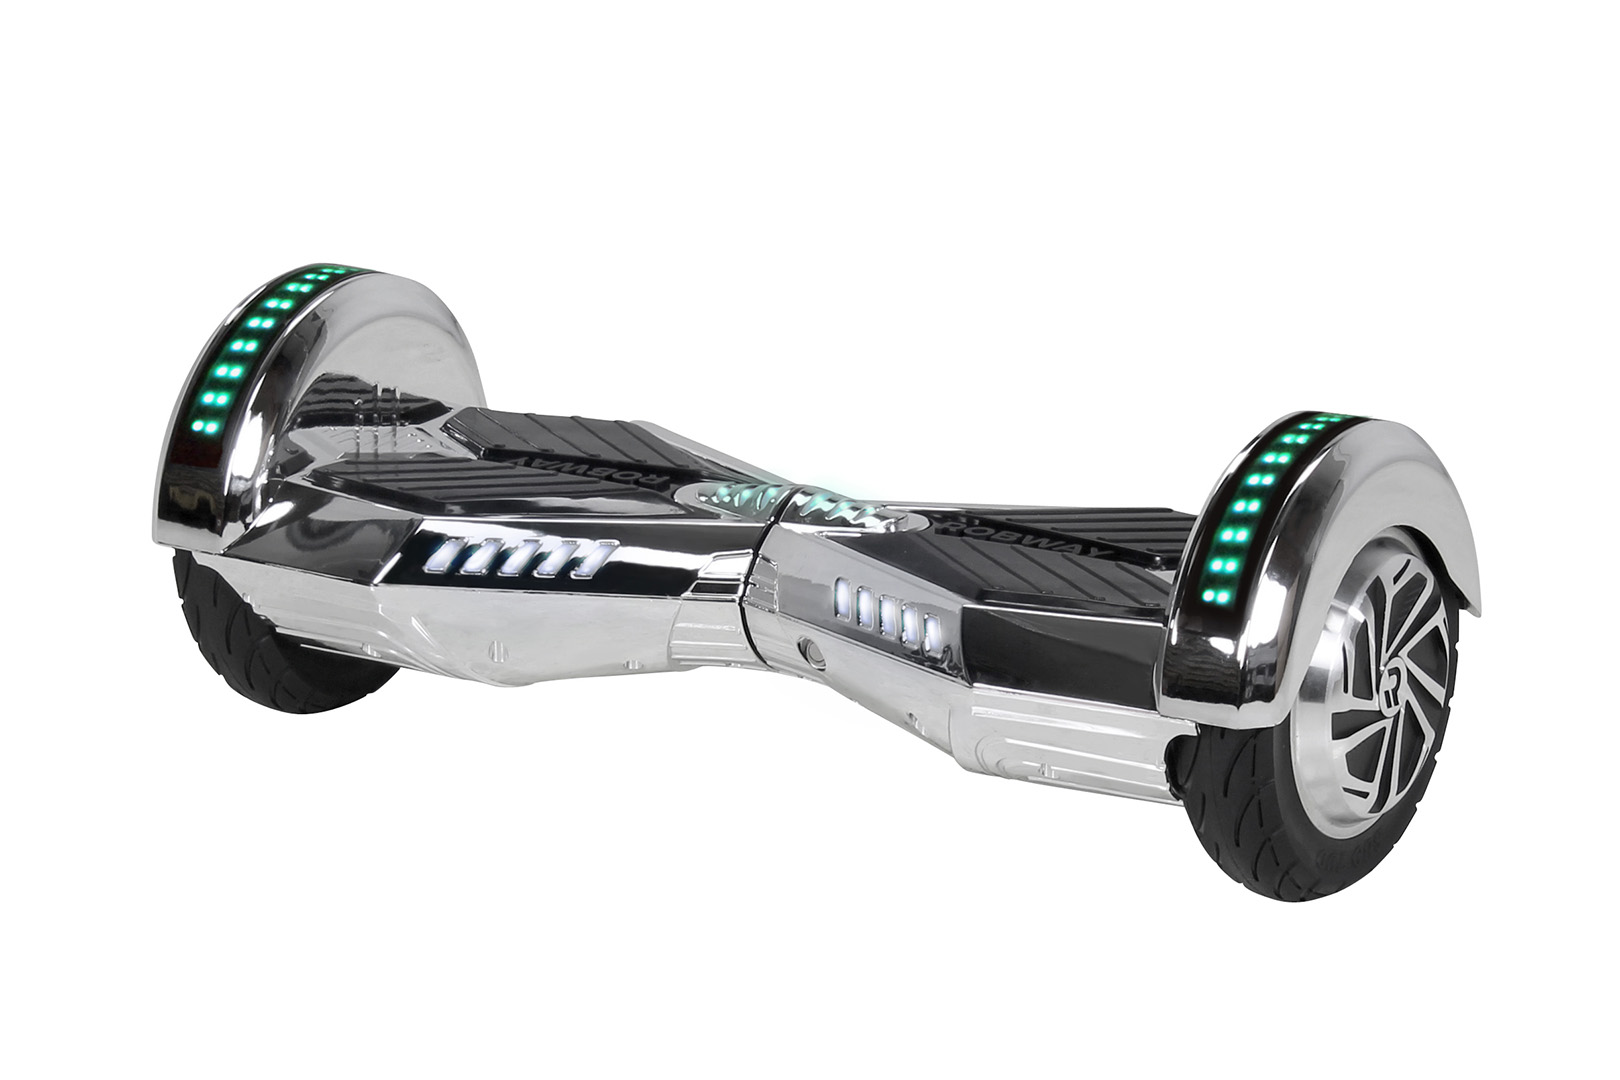 robway w2 self balancing scooter hoverboards von robway. Black Bedroom Furniture Sets. Home Design Ideas